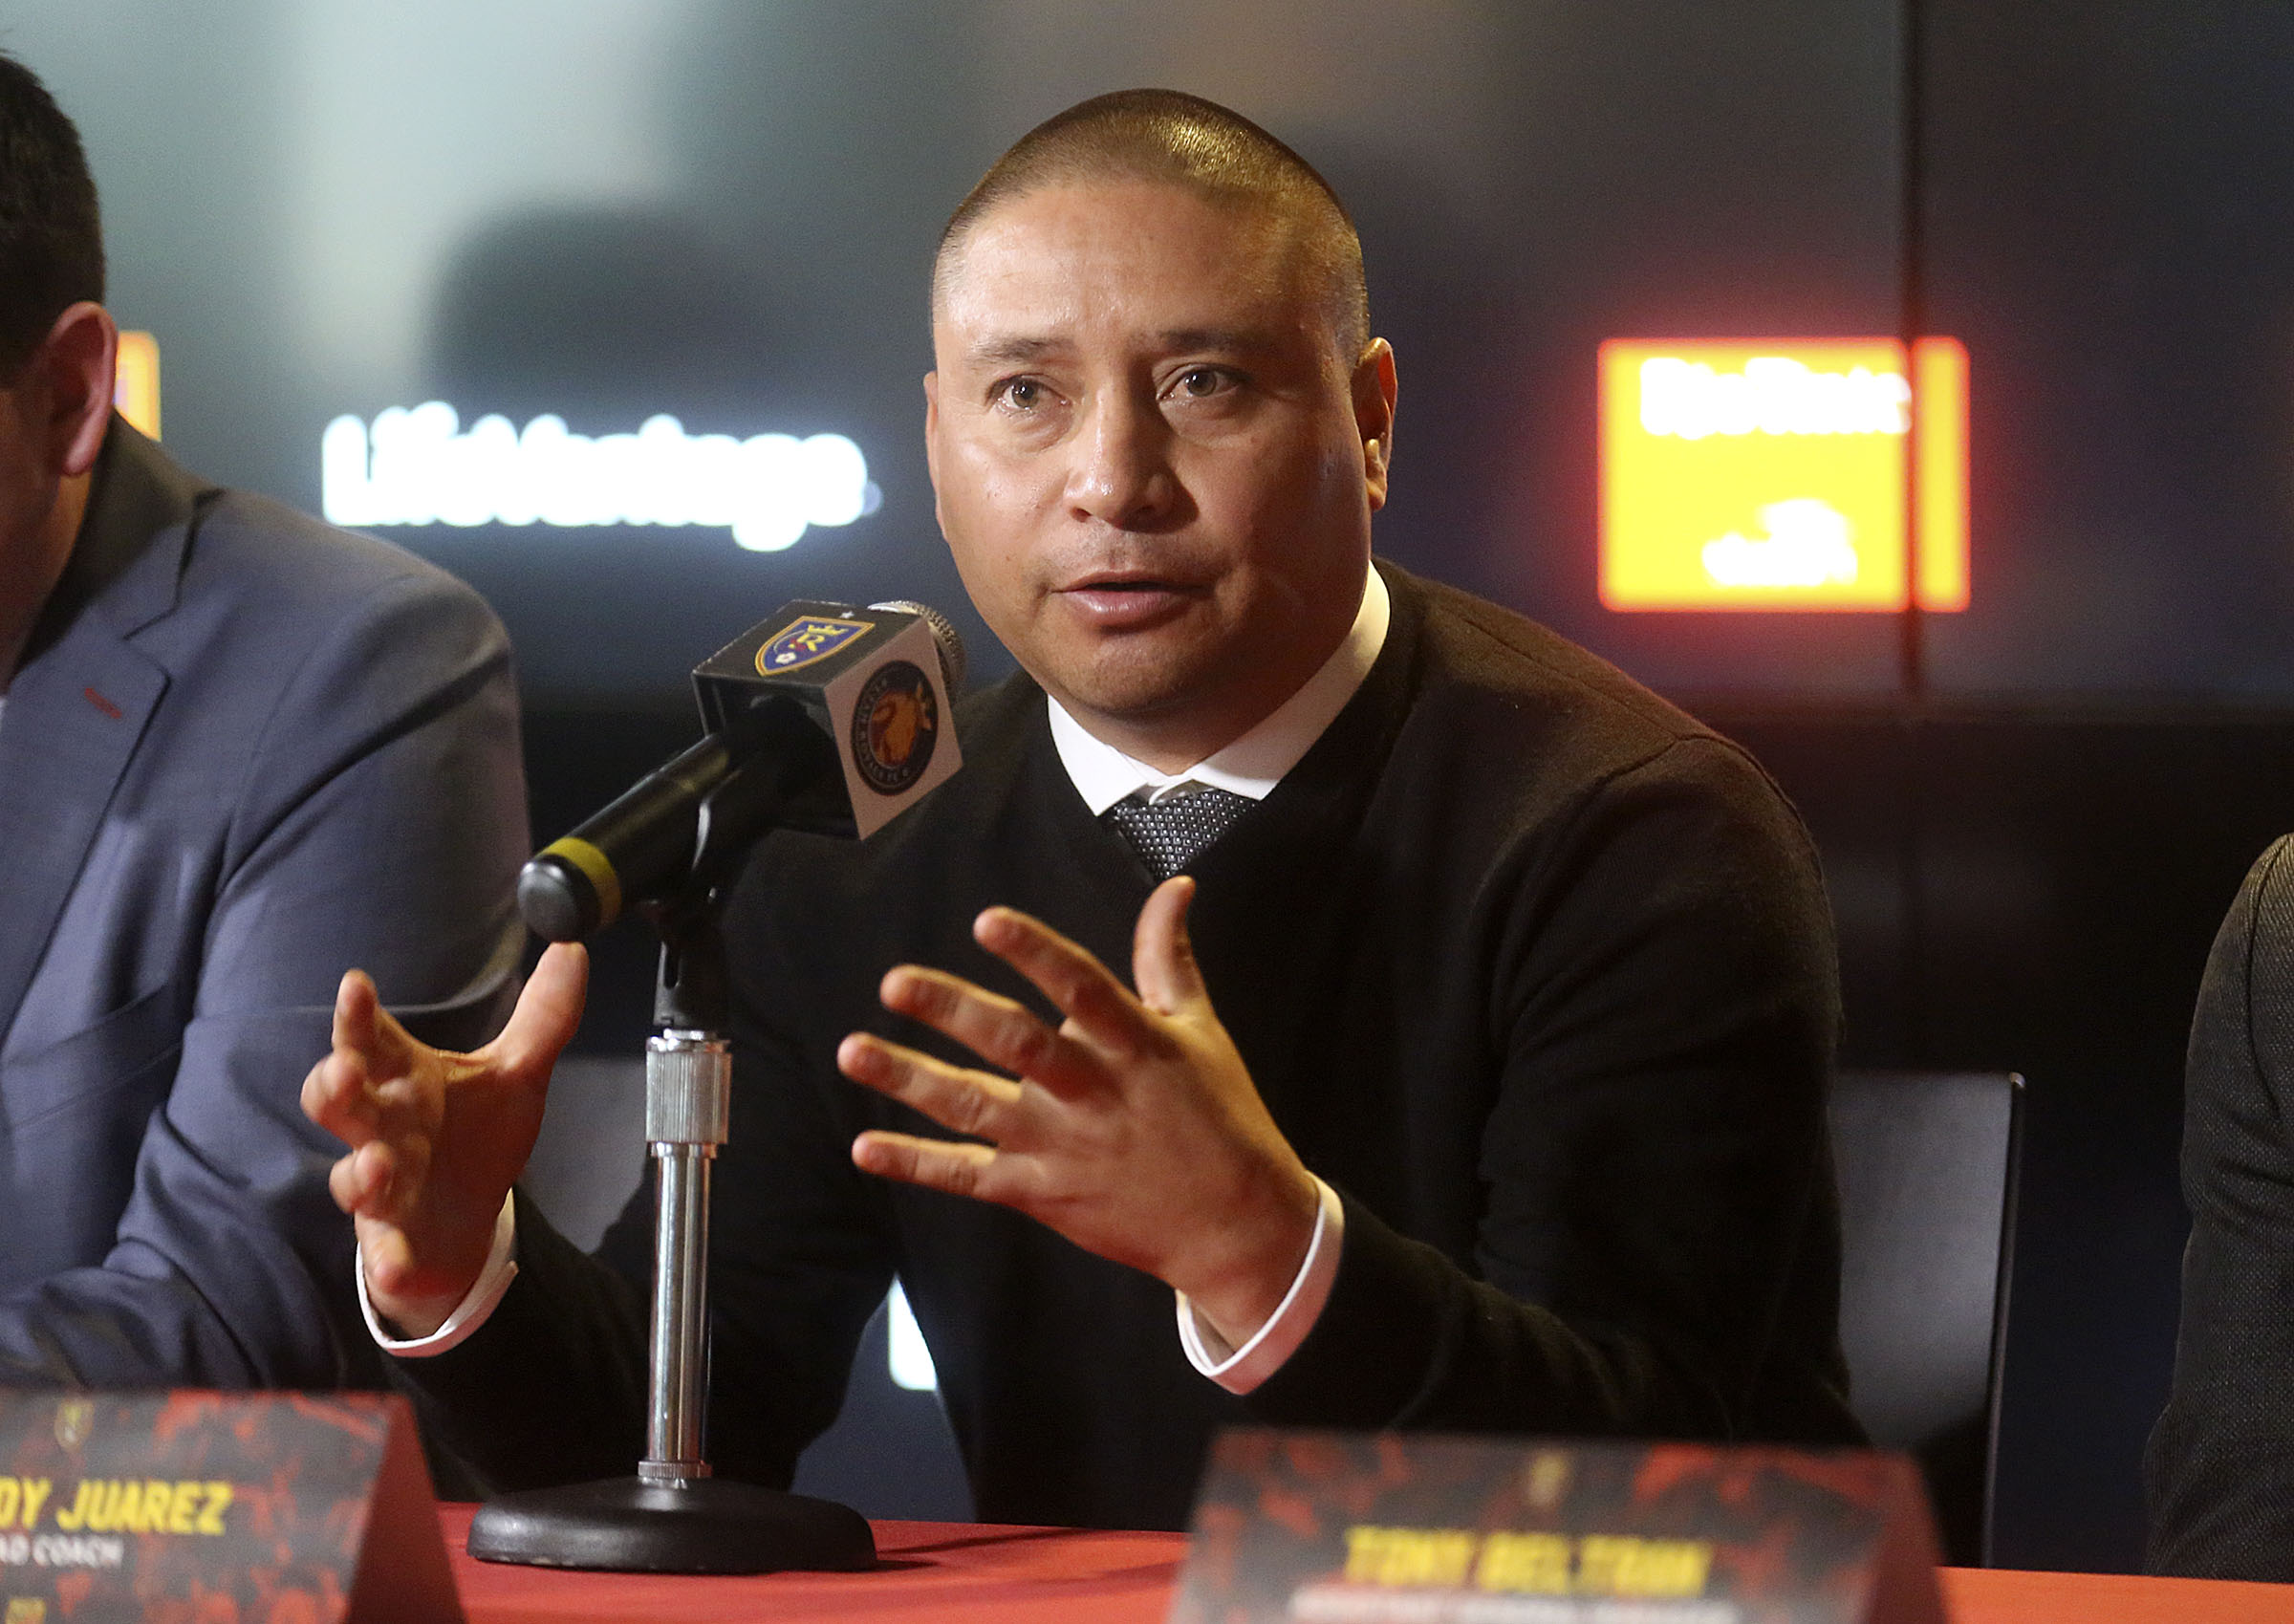 Real Salt Lake head coach Freddy Juarez talks to the media during a press conference to announce his appointment at Rio Tinto Stadium in Sandy on Tuesday, Dec. 3, 2019.